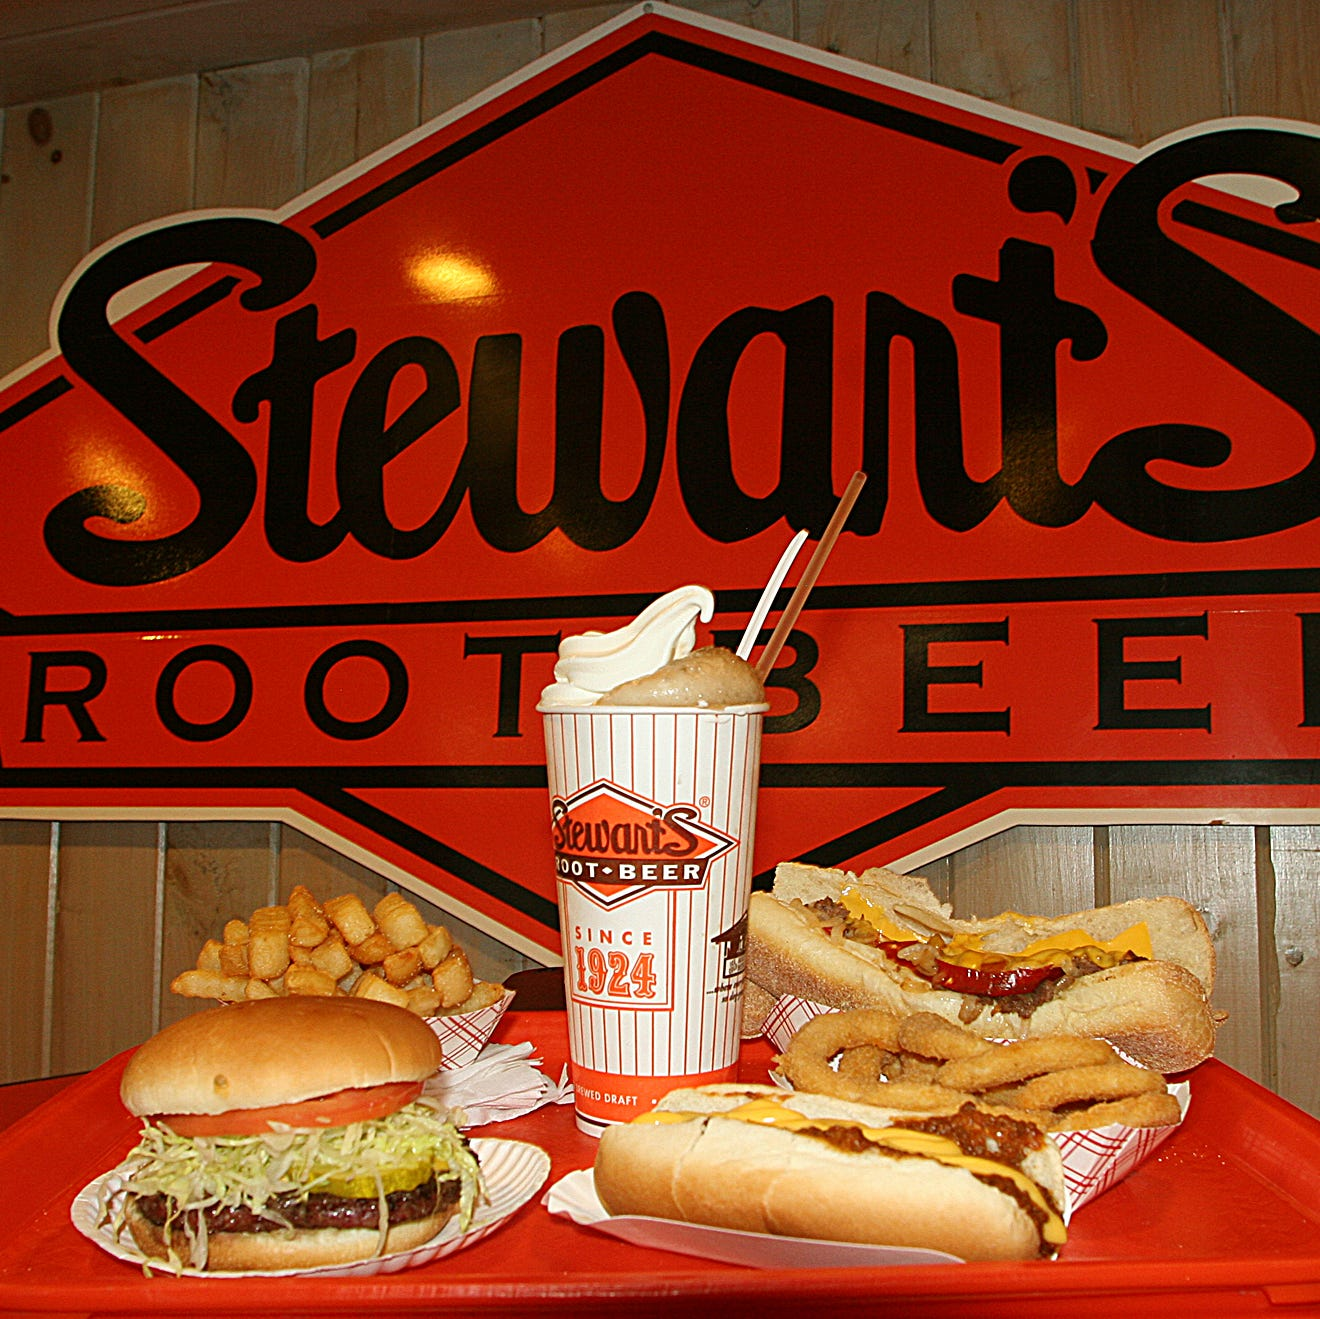 Root beer returns to Route 46 as Stewart's Dover reopens after hiatus